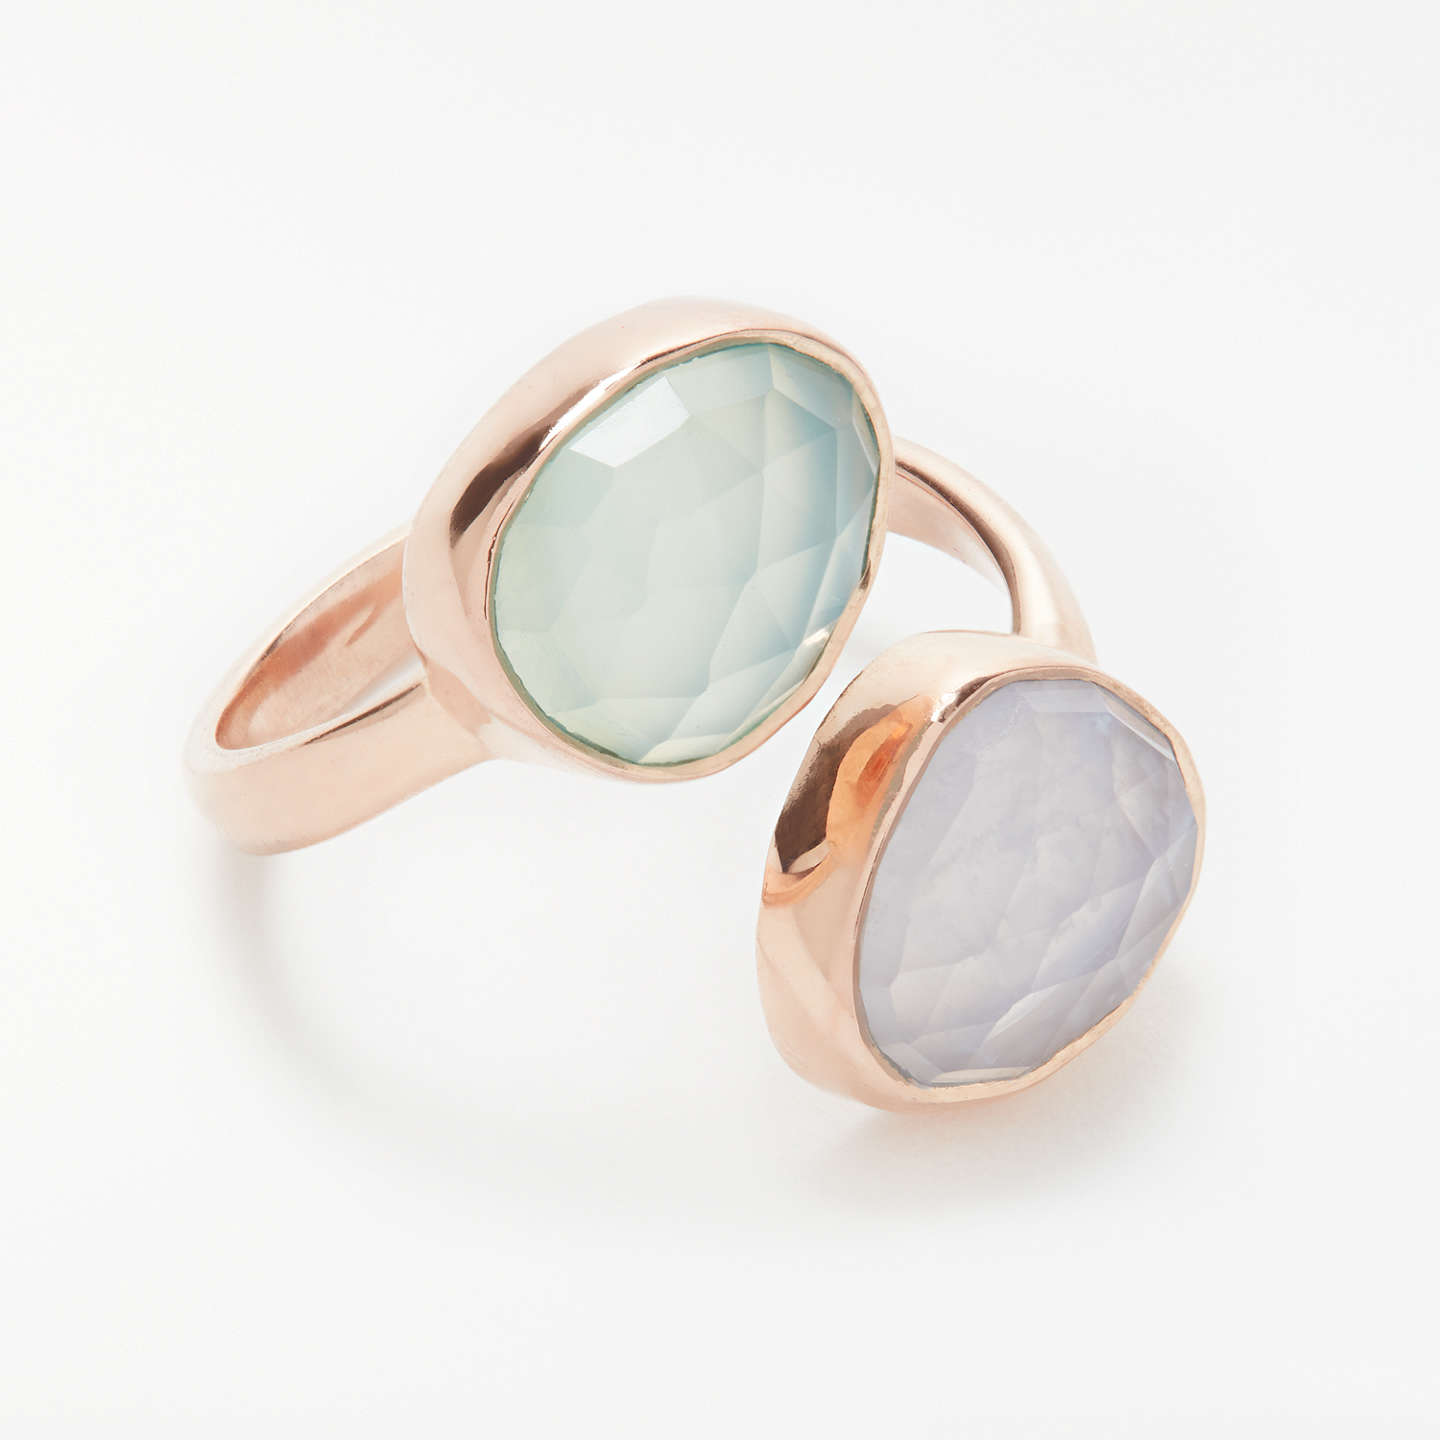 BuyJohn Lewis Semi-Precious Stone Ring, Aqua Chalcedony/Lace Agate Online at johnlewis.com